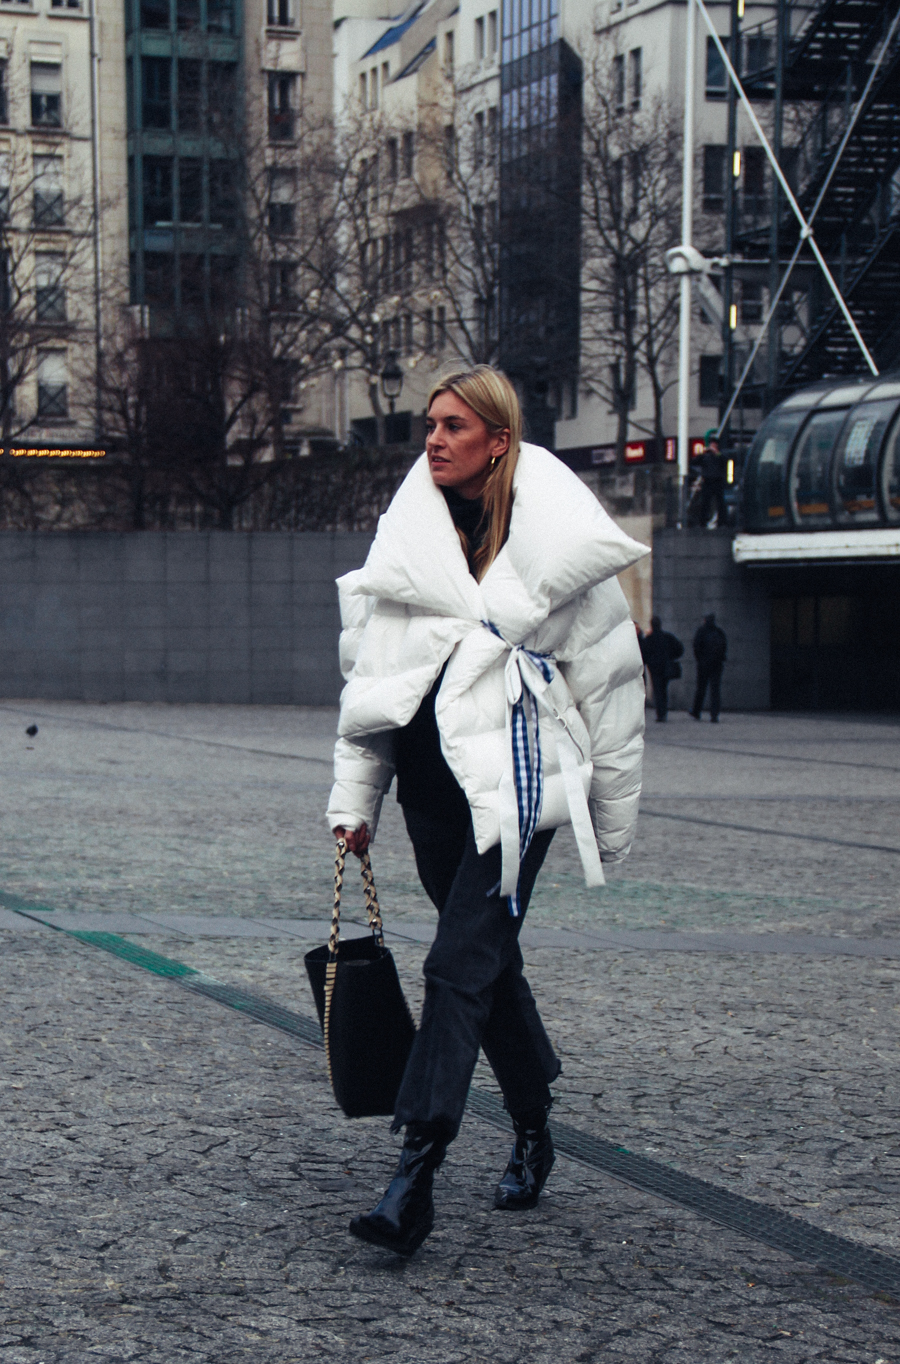 28 street looks from Paris couture week: Camille Charriere